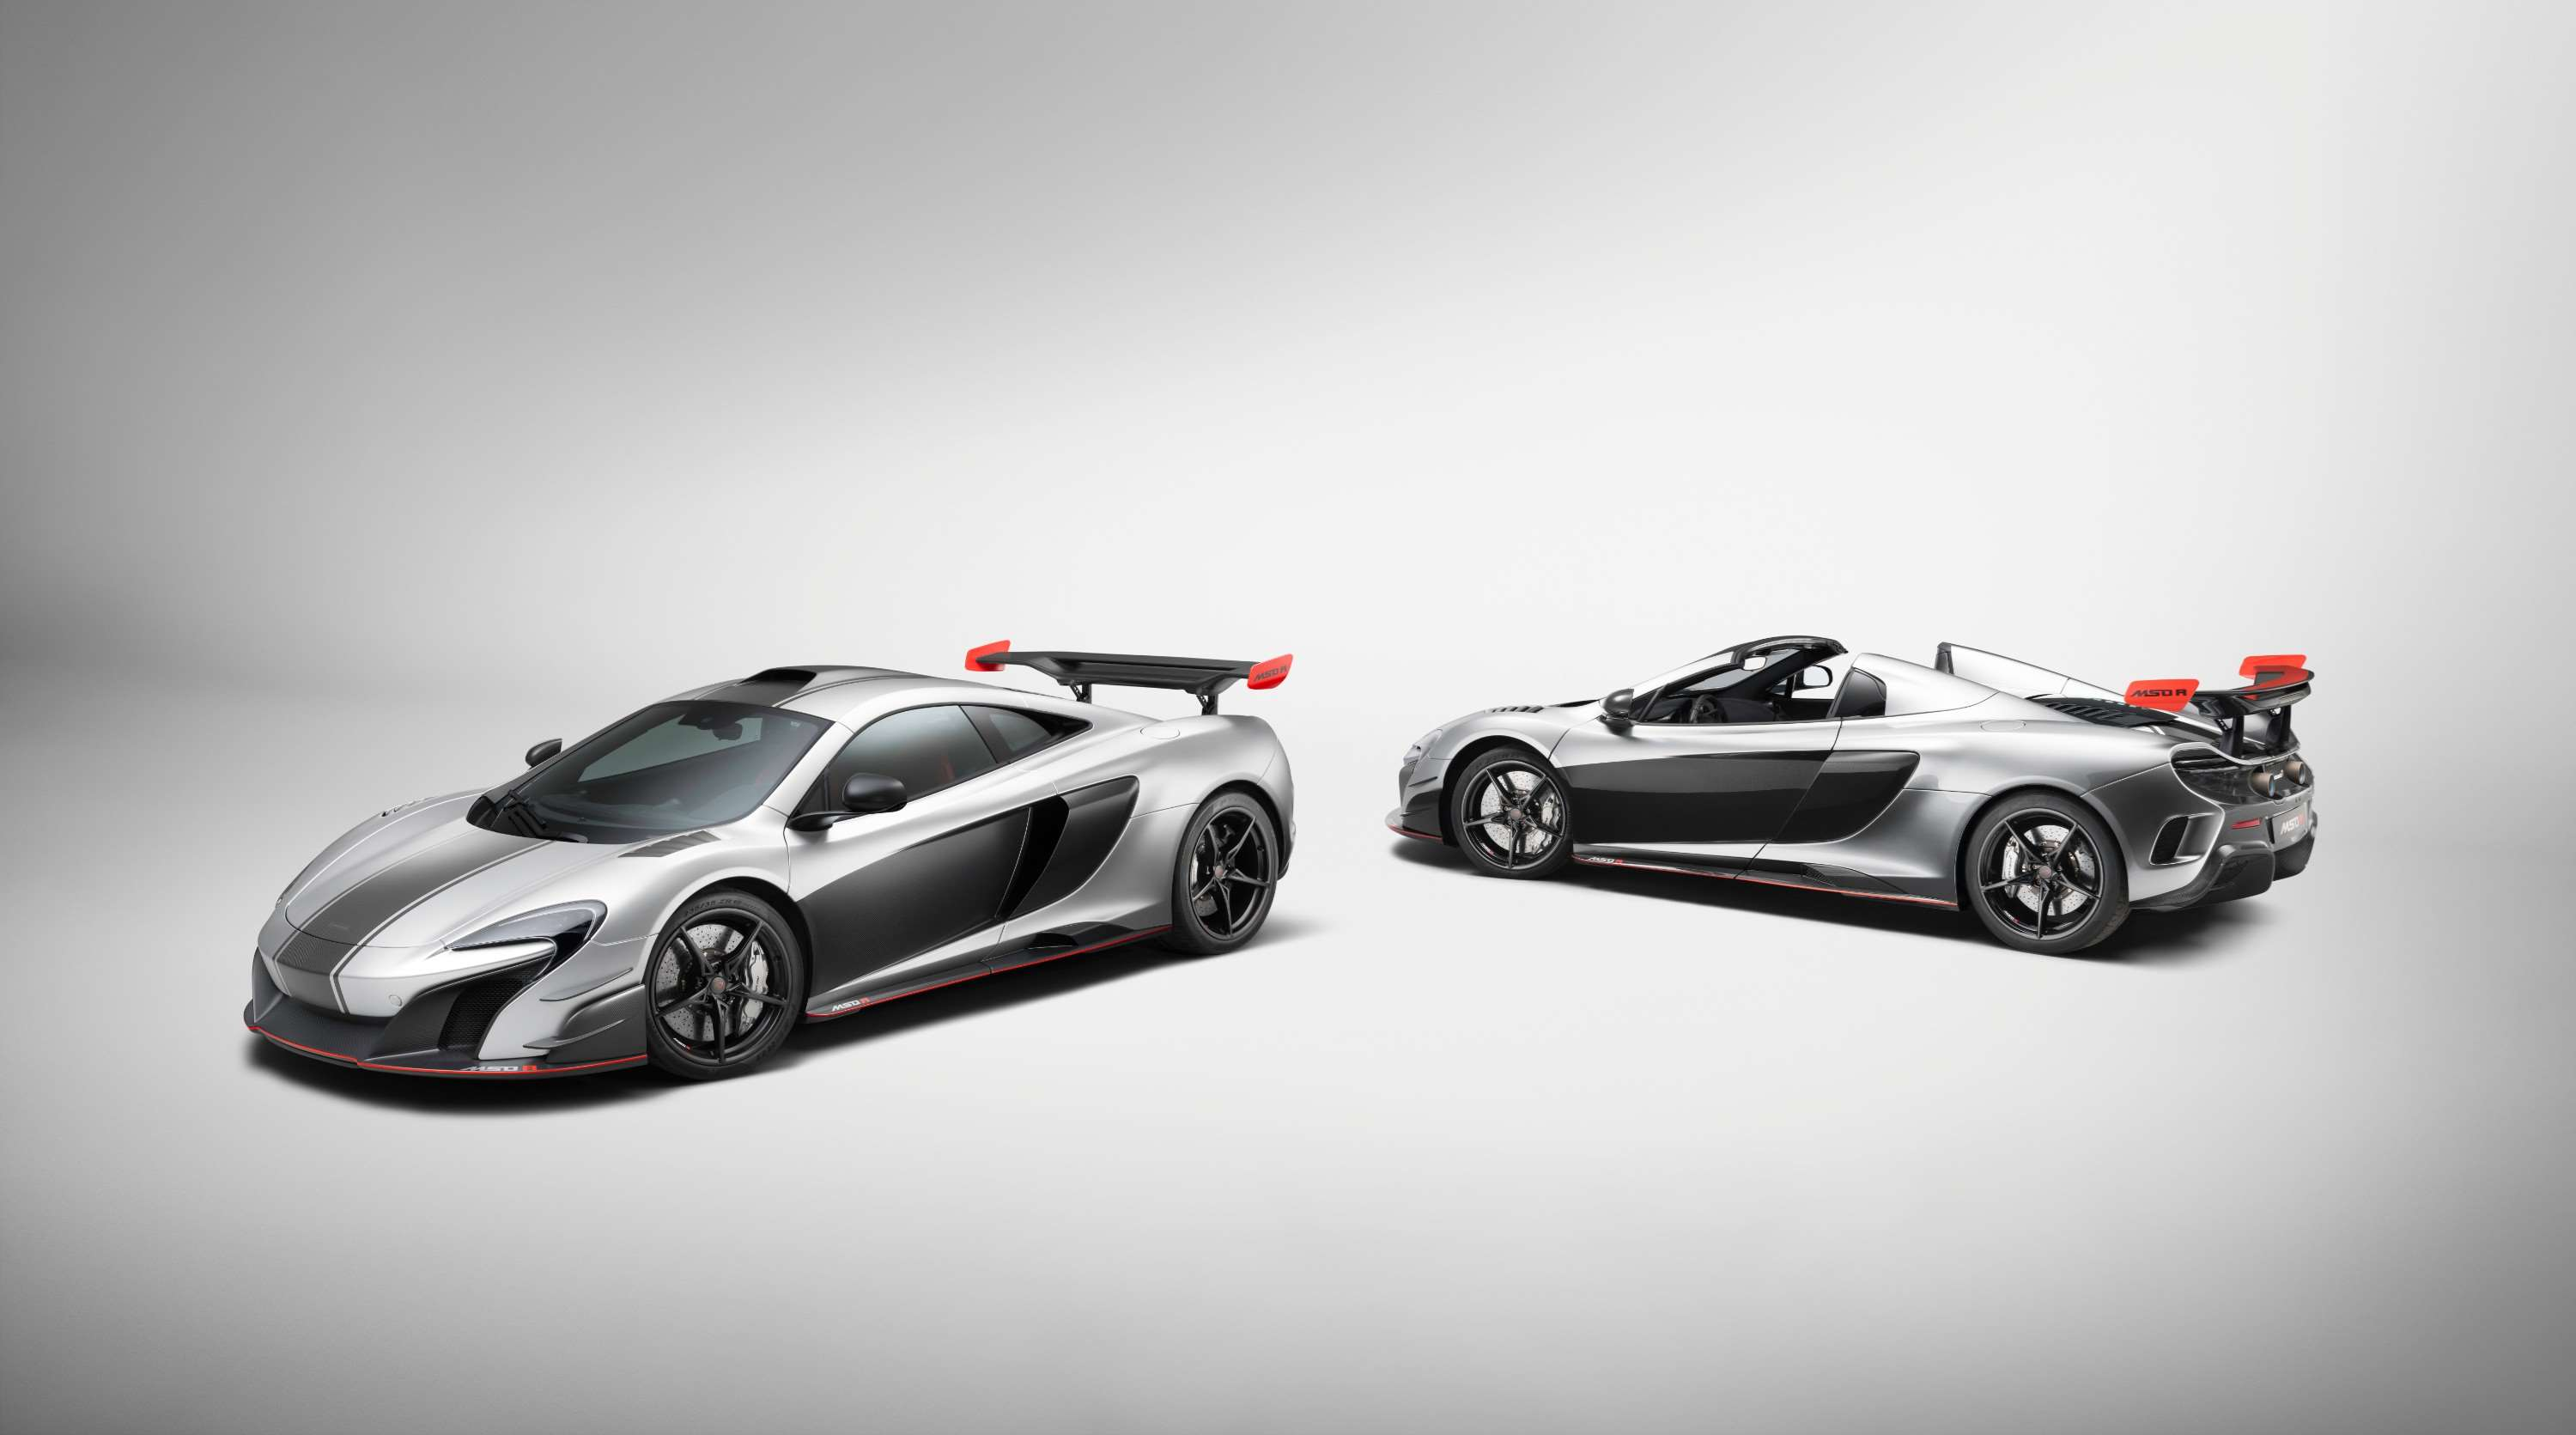 McLaren reveal the MSO R twins - cxustom LT and LT Spider